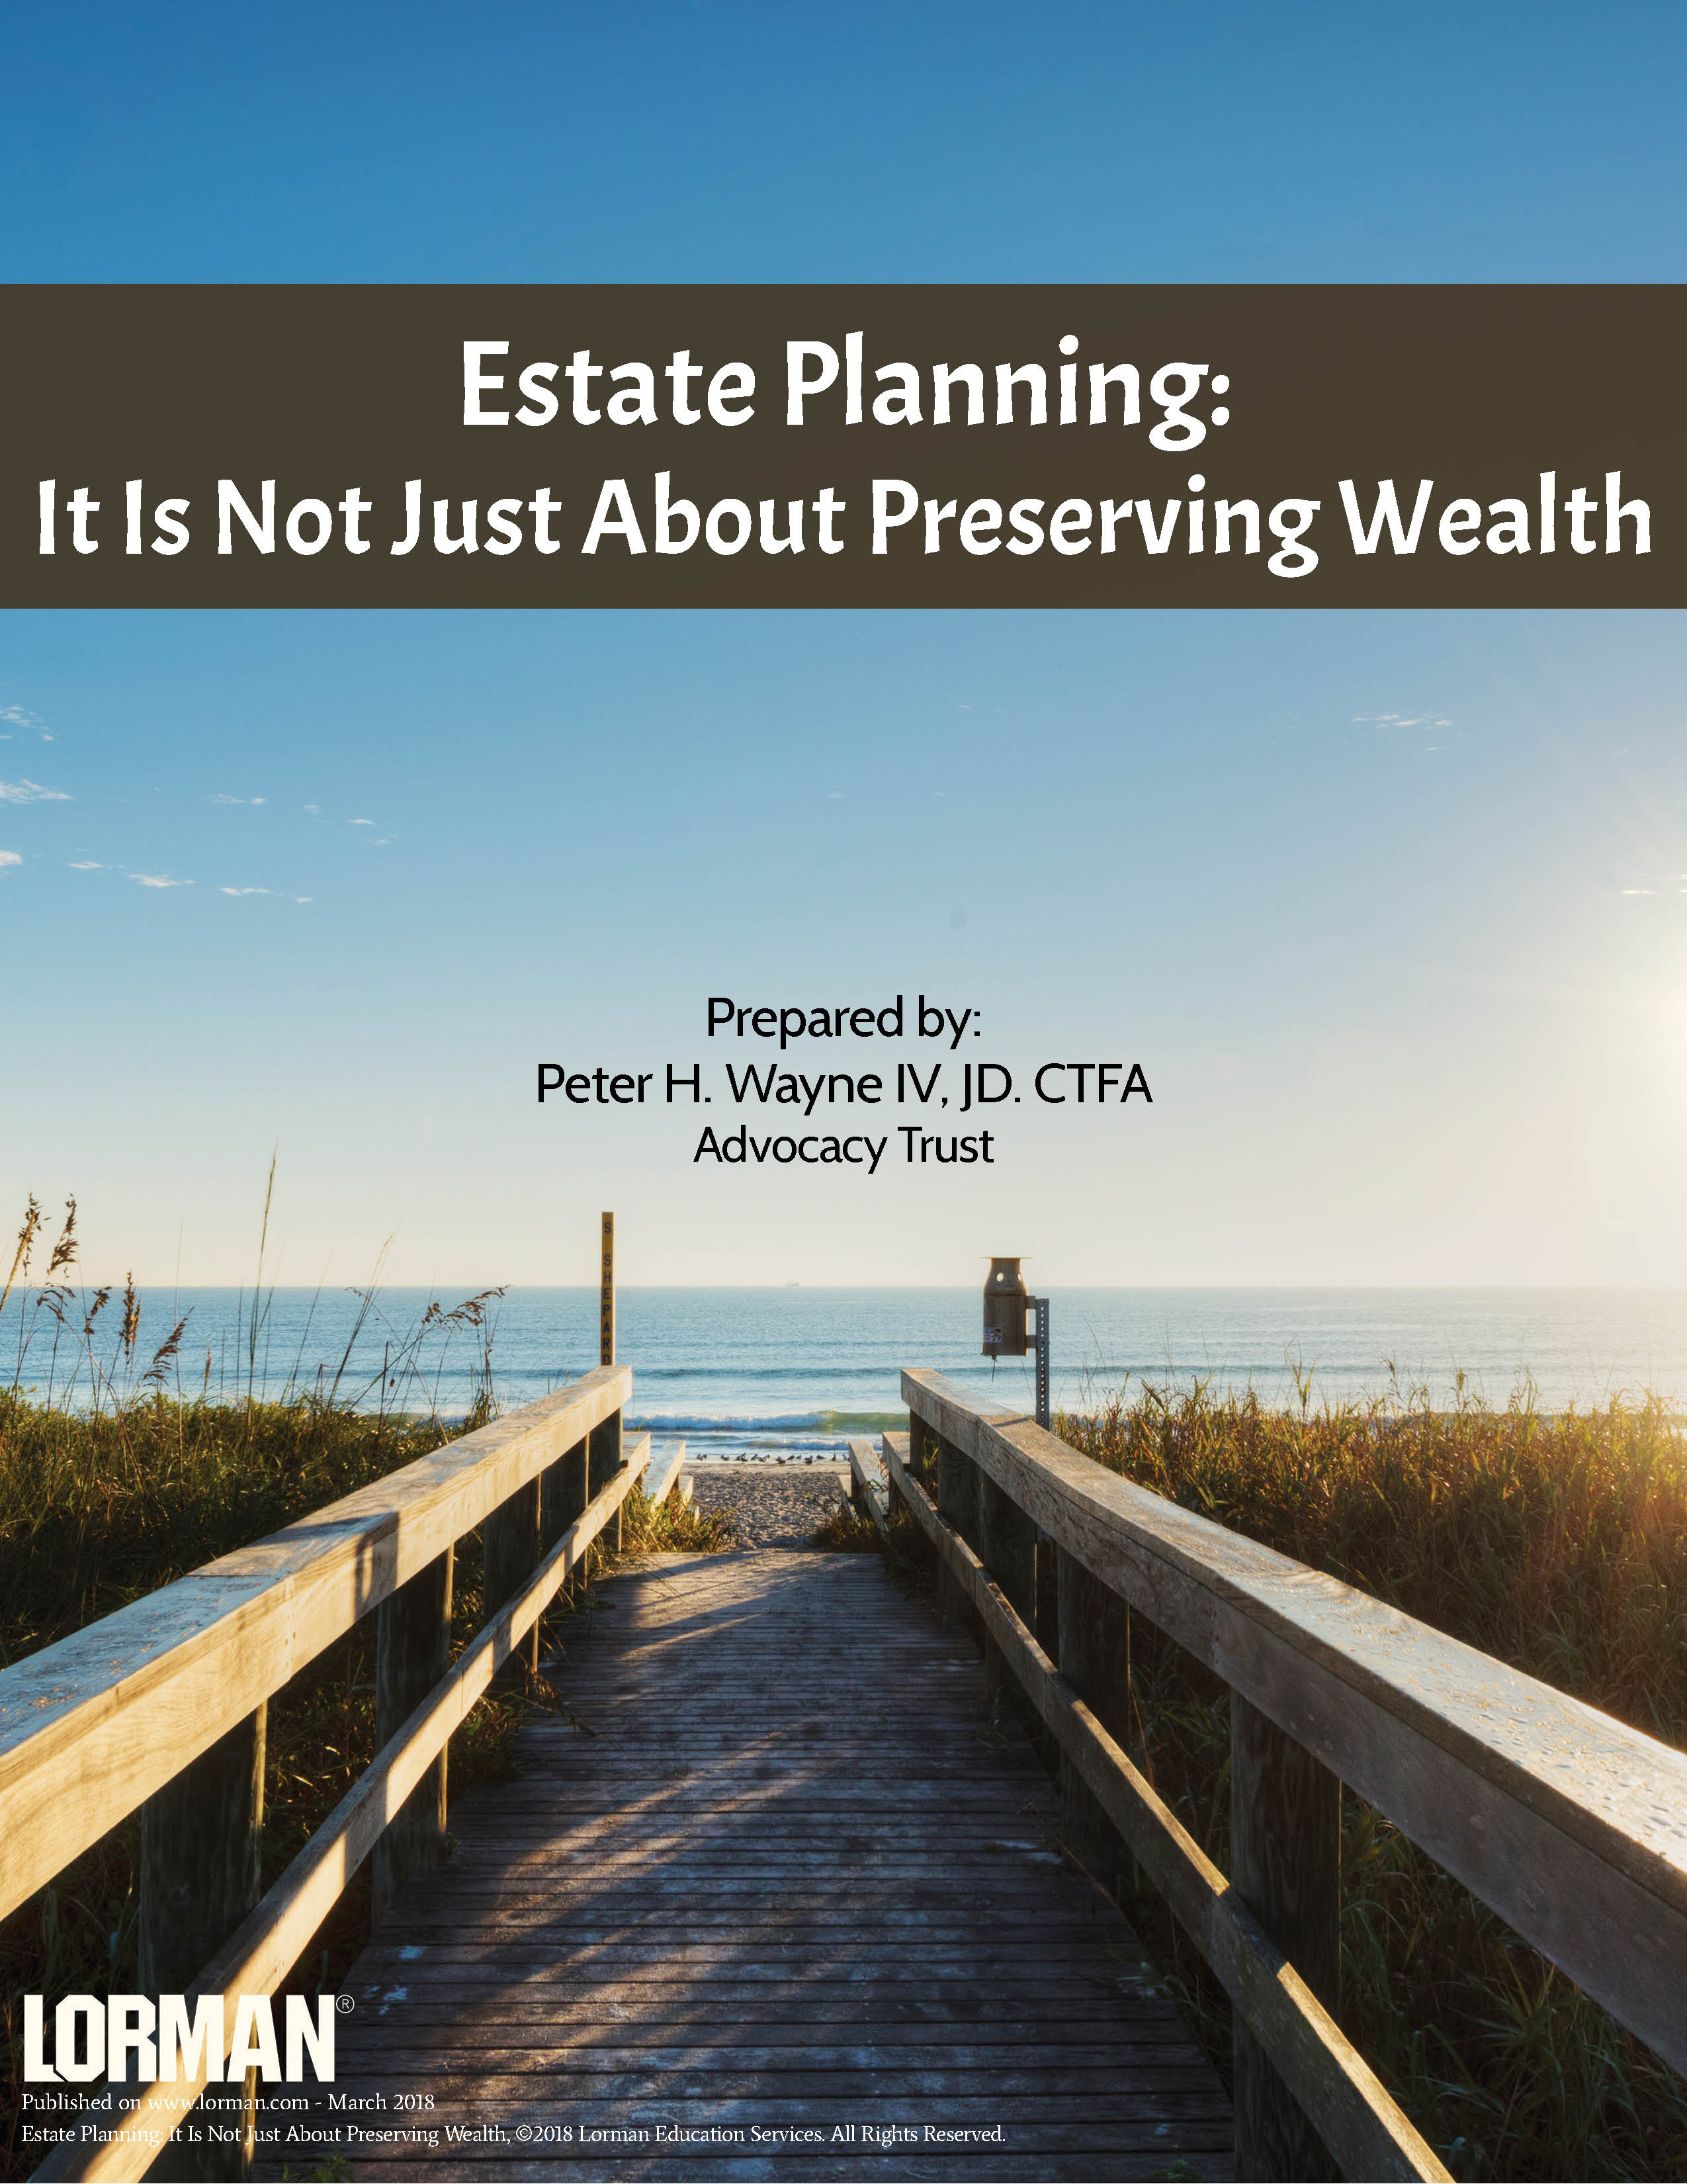 Estate Planning: It Is Not Just About Preserving Wealth